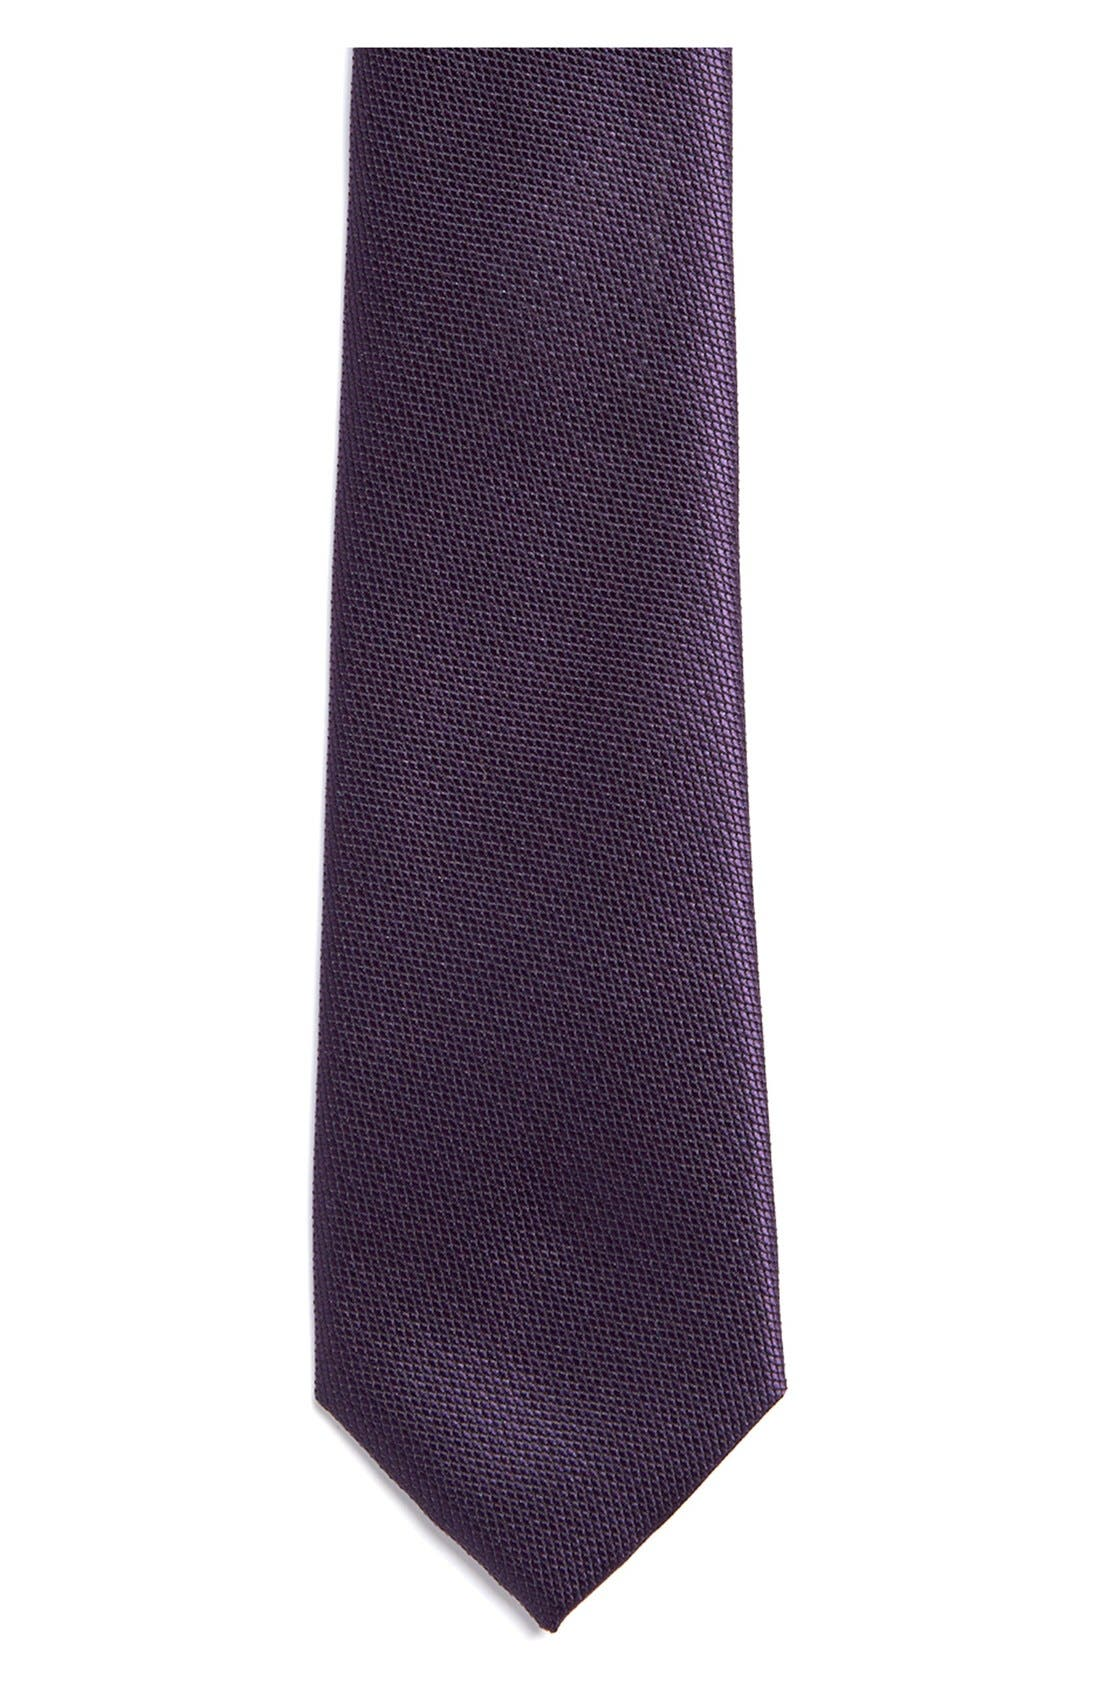 Alternate Image 2  - Topman Slim Burgundy Tie